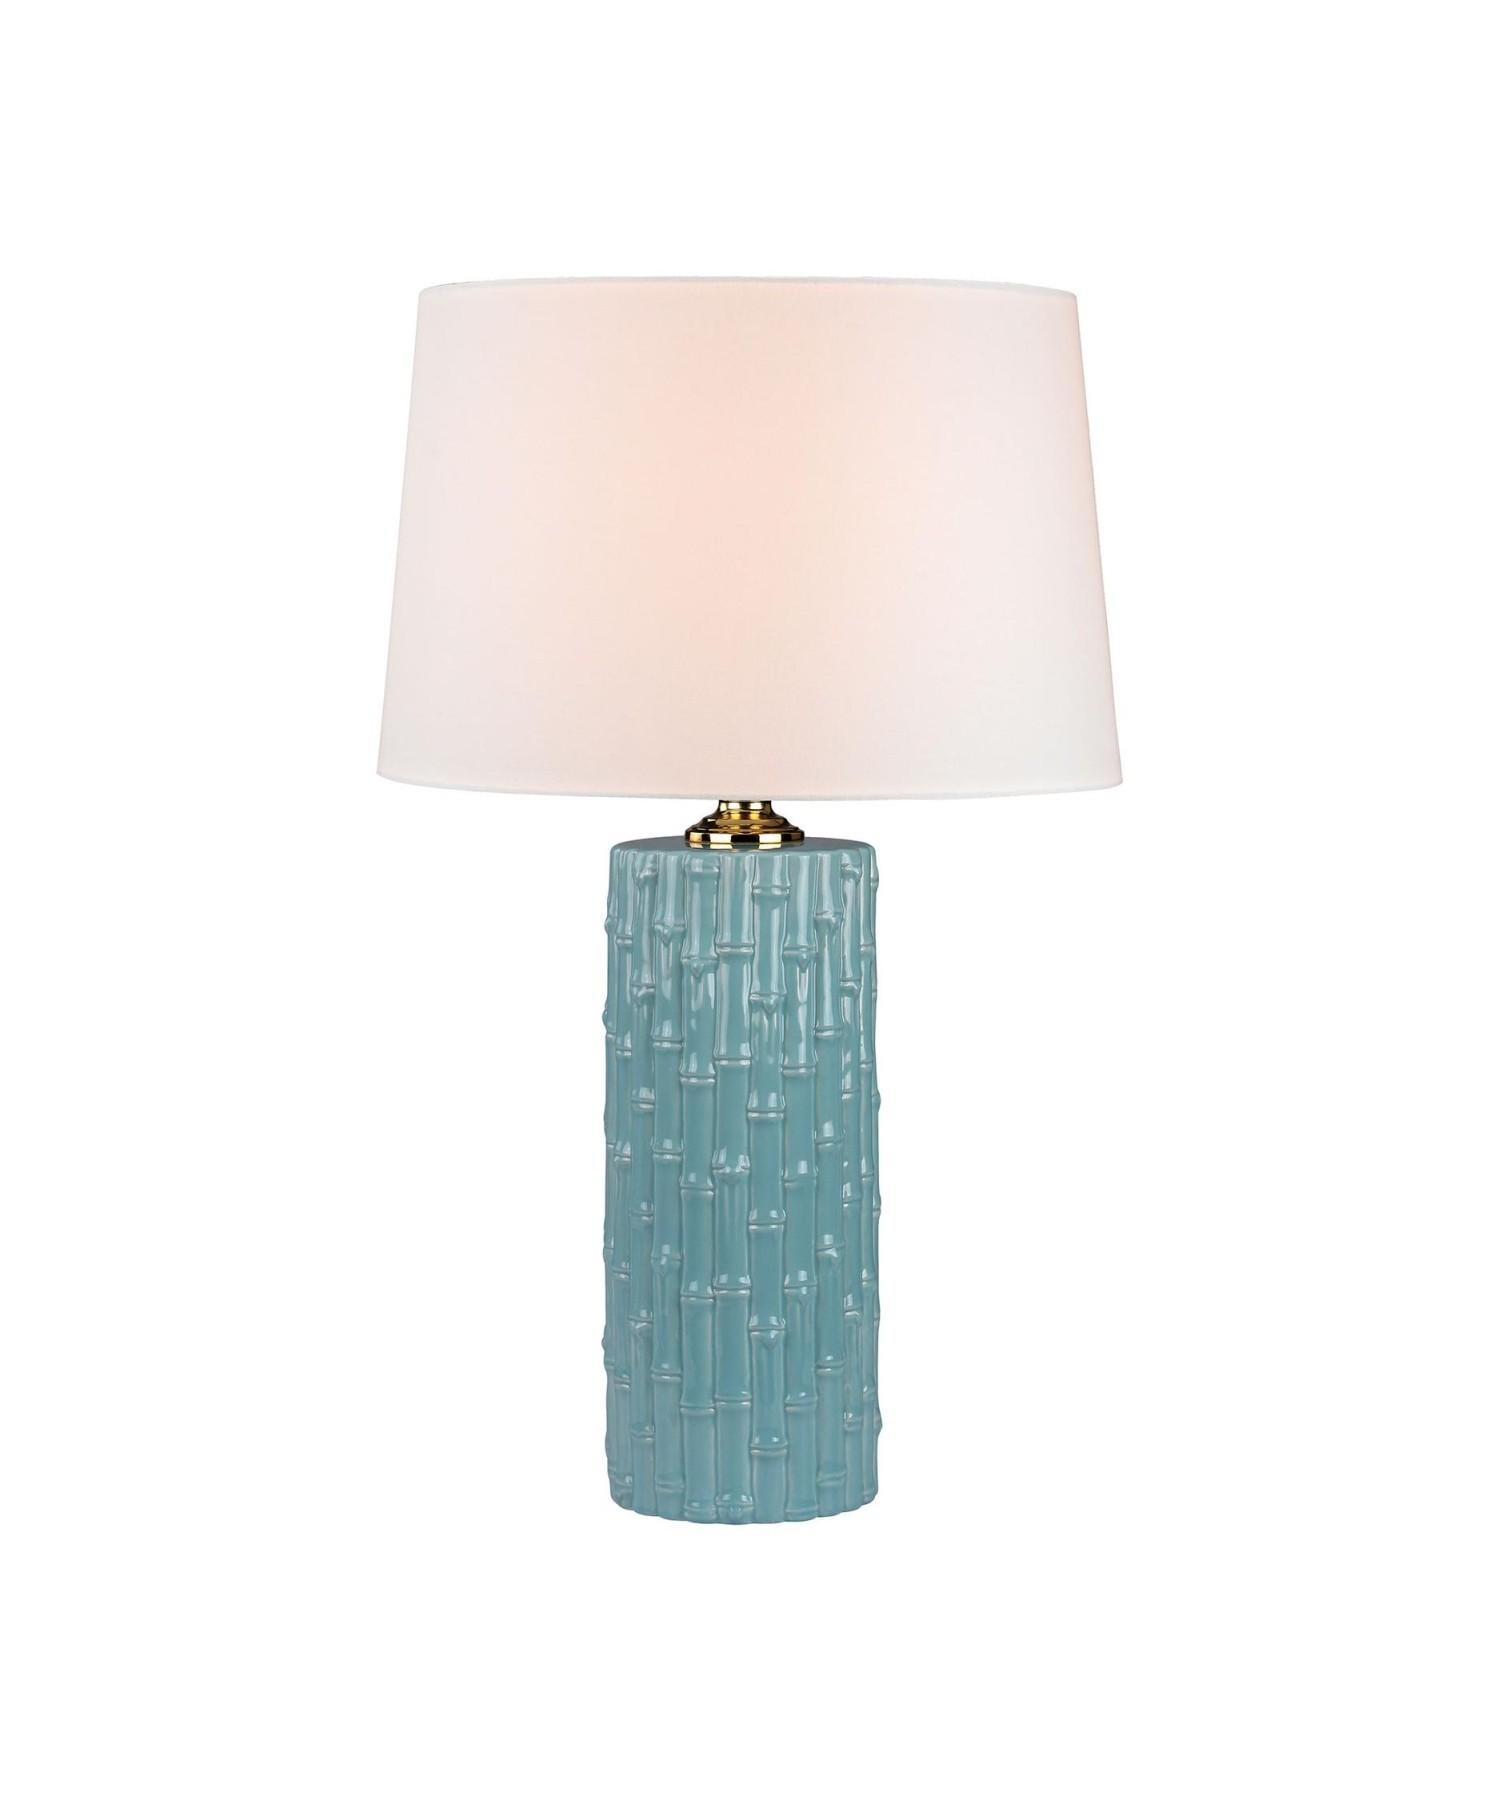 Woven Ceramic Table Lamp White Wood Tone 218